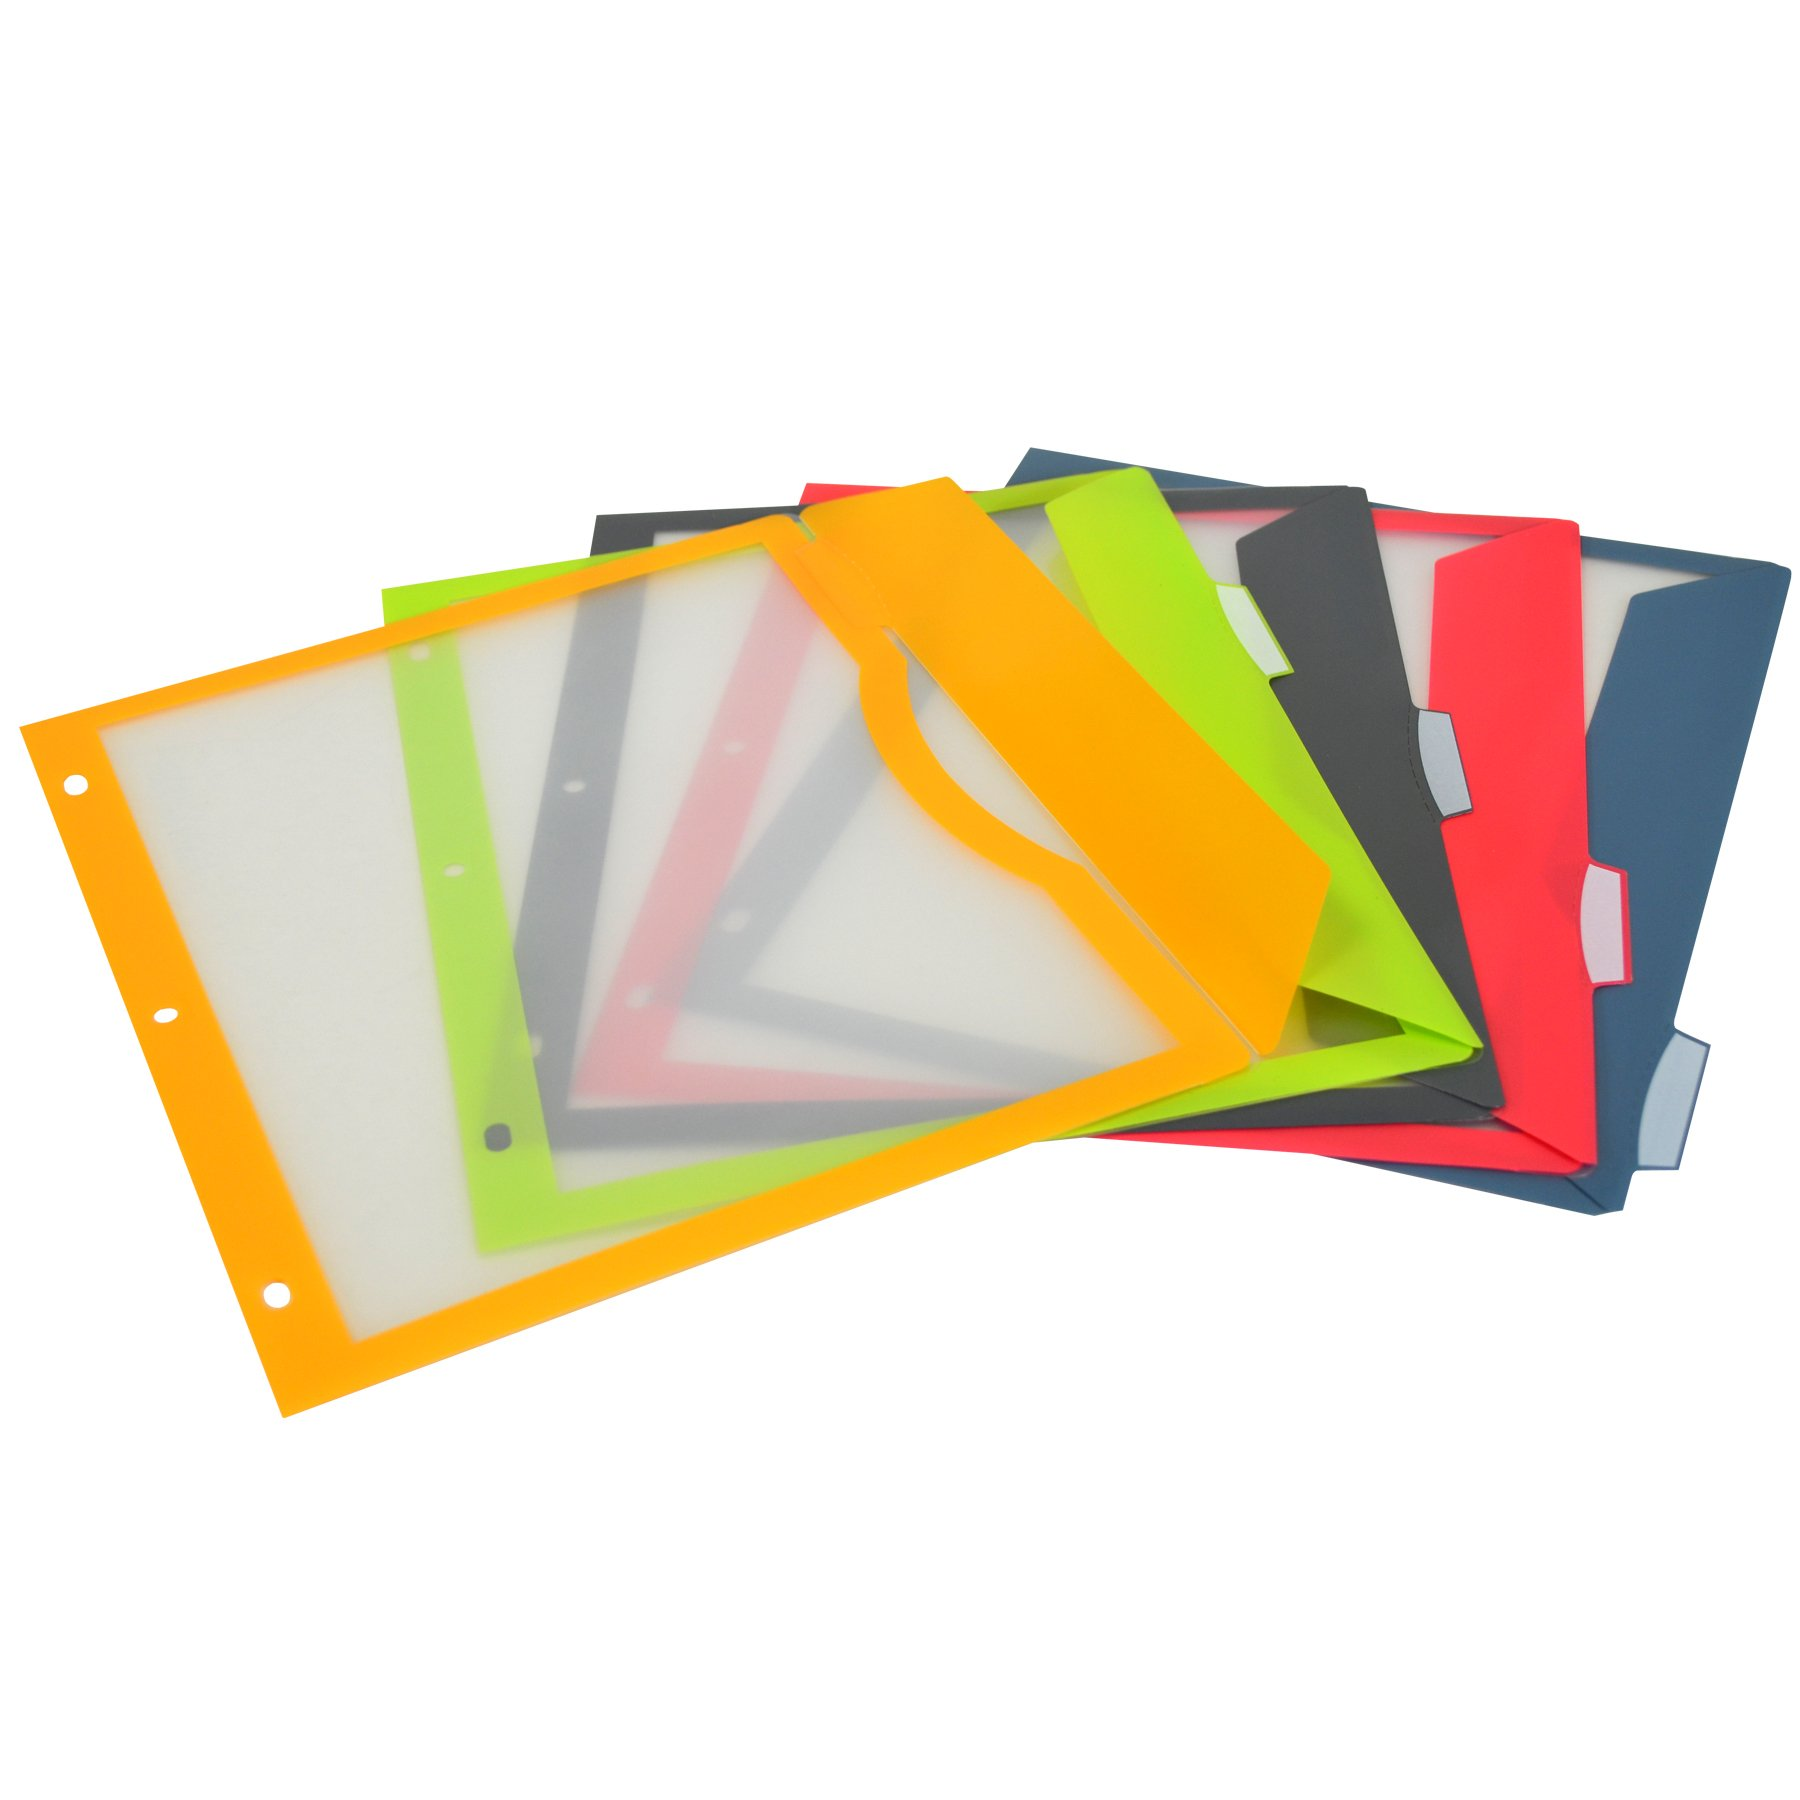 C-Line 5-Tab Binder Pockets with Write-On Index Tabs, Assorted Colors, 8.5 x 11 Inches, 5 Pockets per Set (06650)